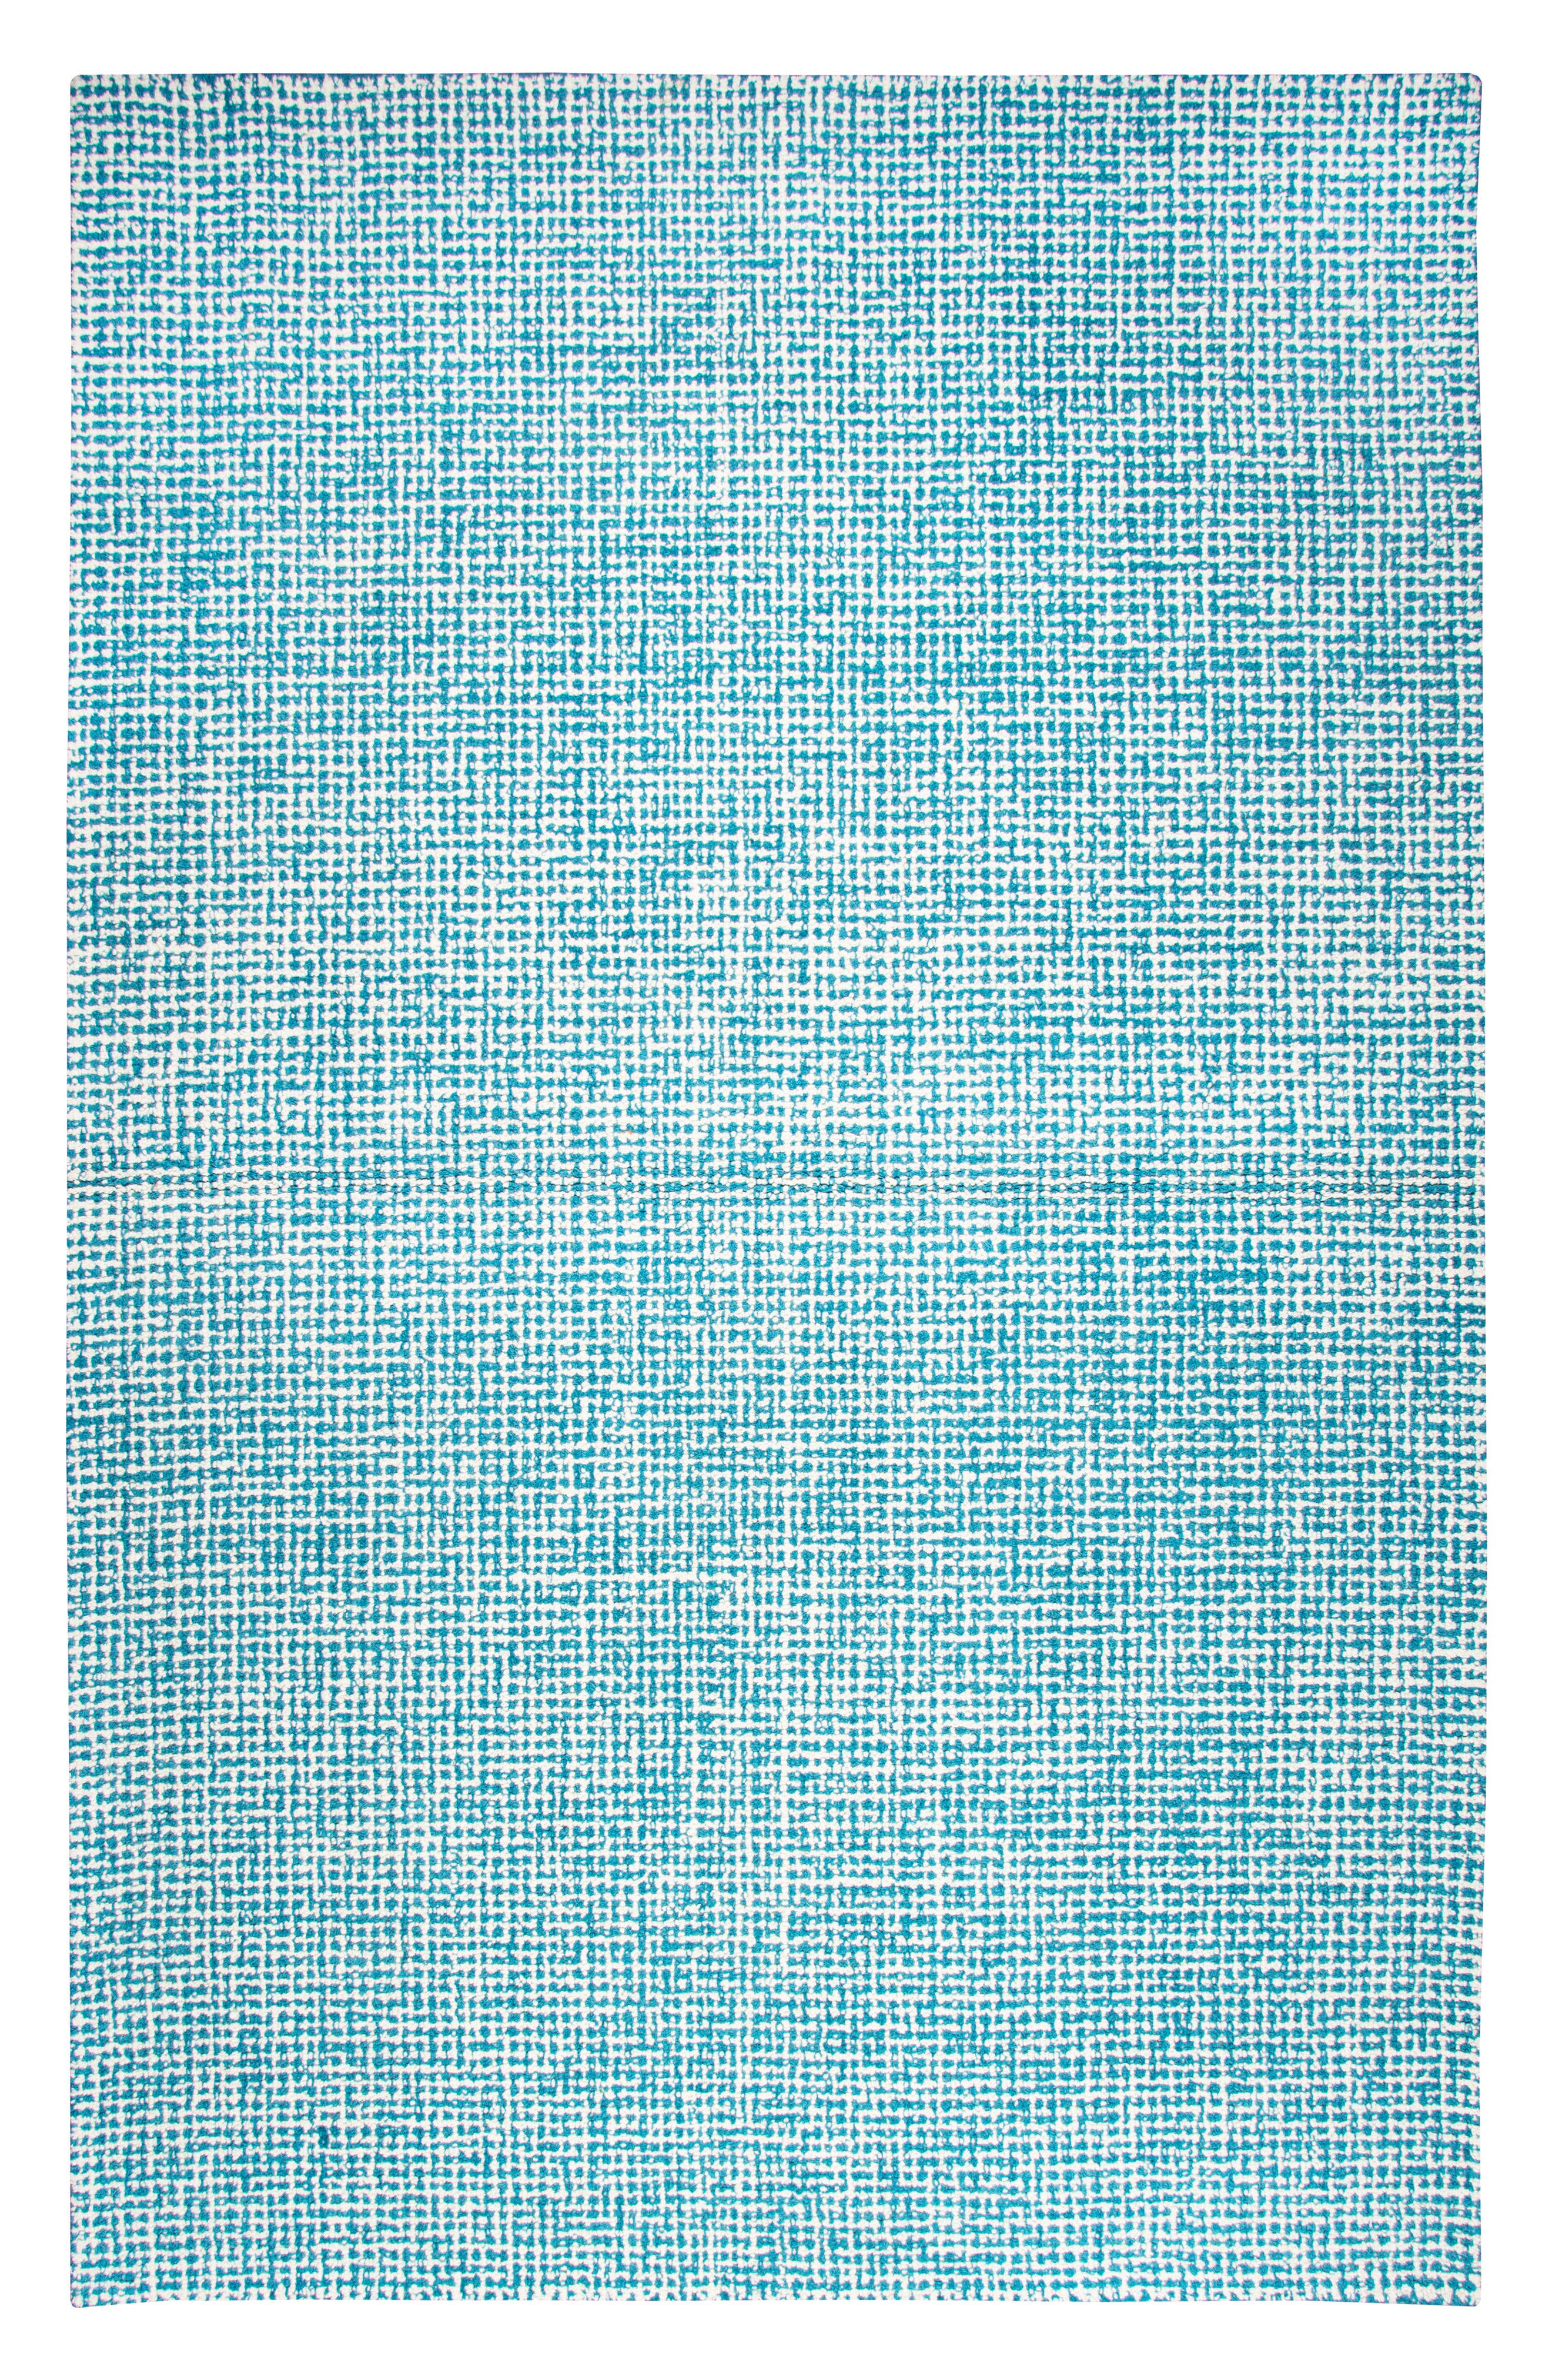 Main Image - Rizzy Home Brindleton Collection Grid Rug